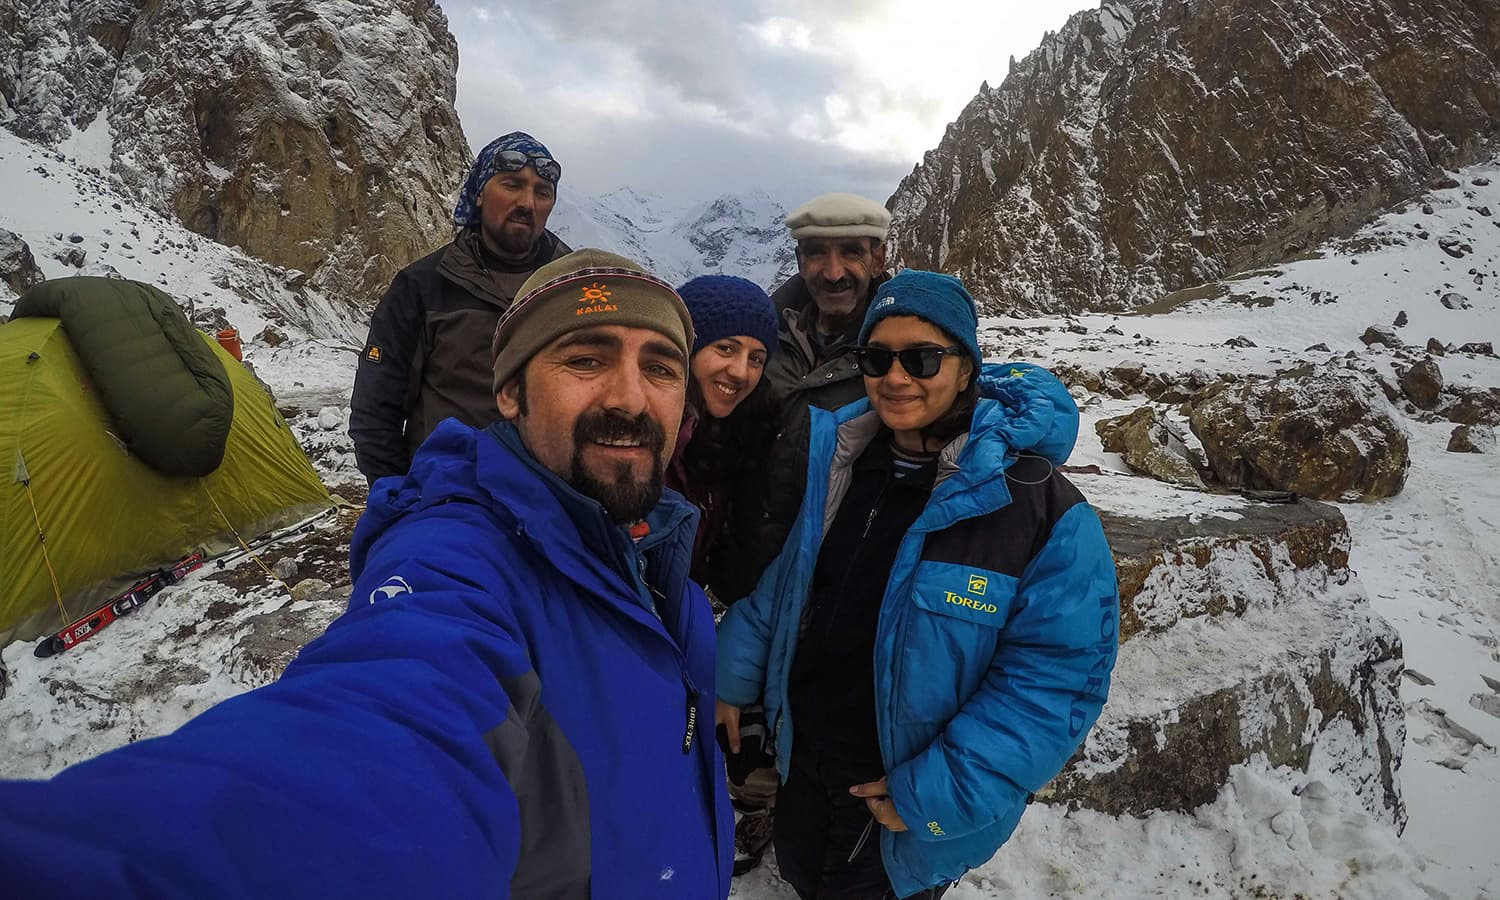 Selfie with Mirza and Samina Baig, their brother in the mountains and their uncle. — Photo by author